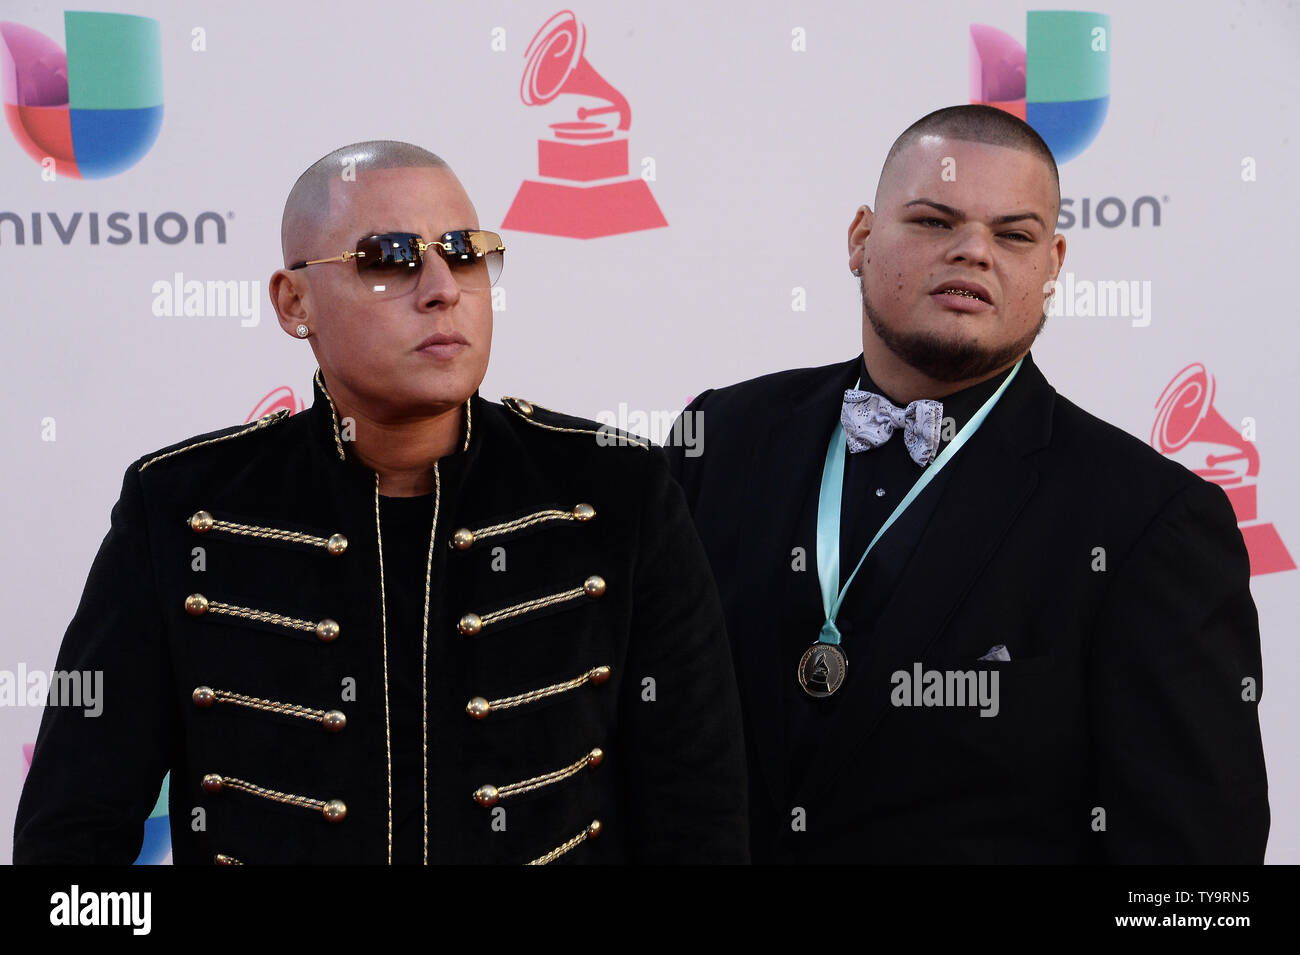 Cosculluela Y Mueka Arrives On The Red Carpet For The 17th Annual